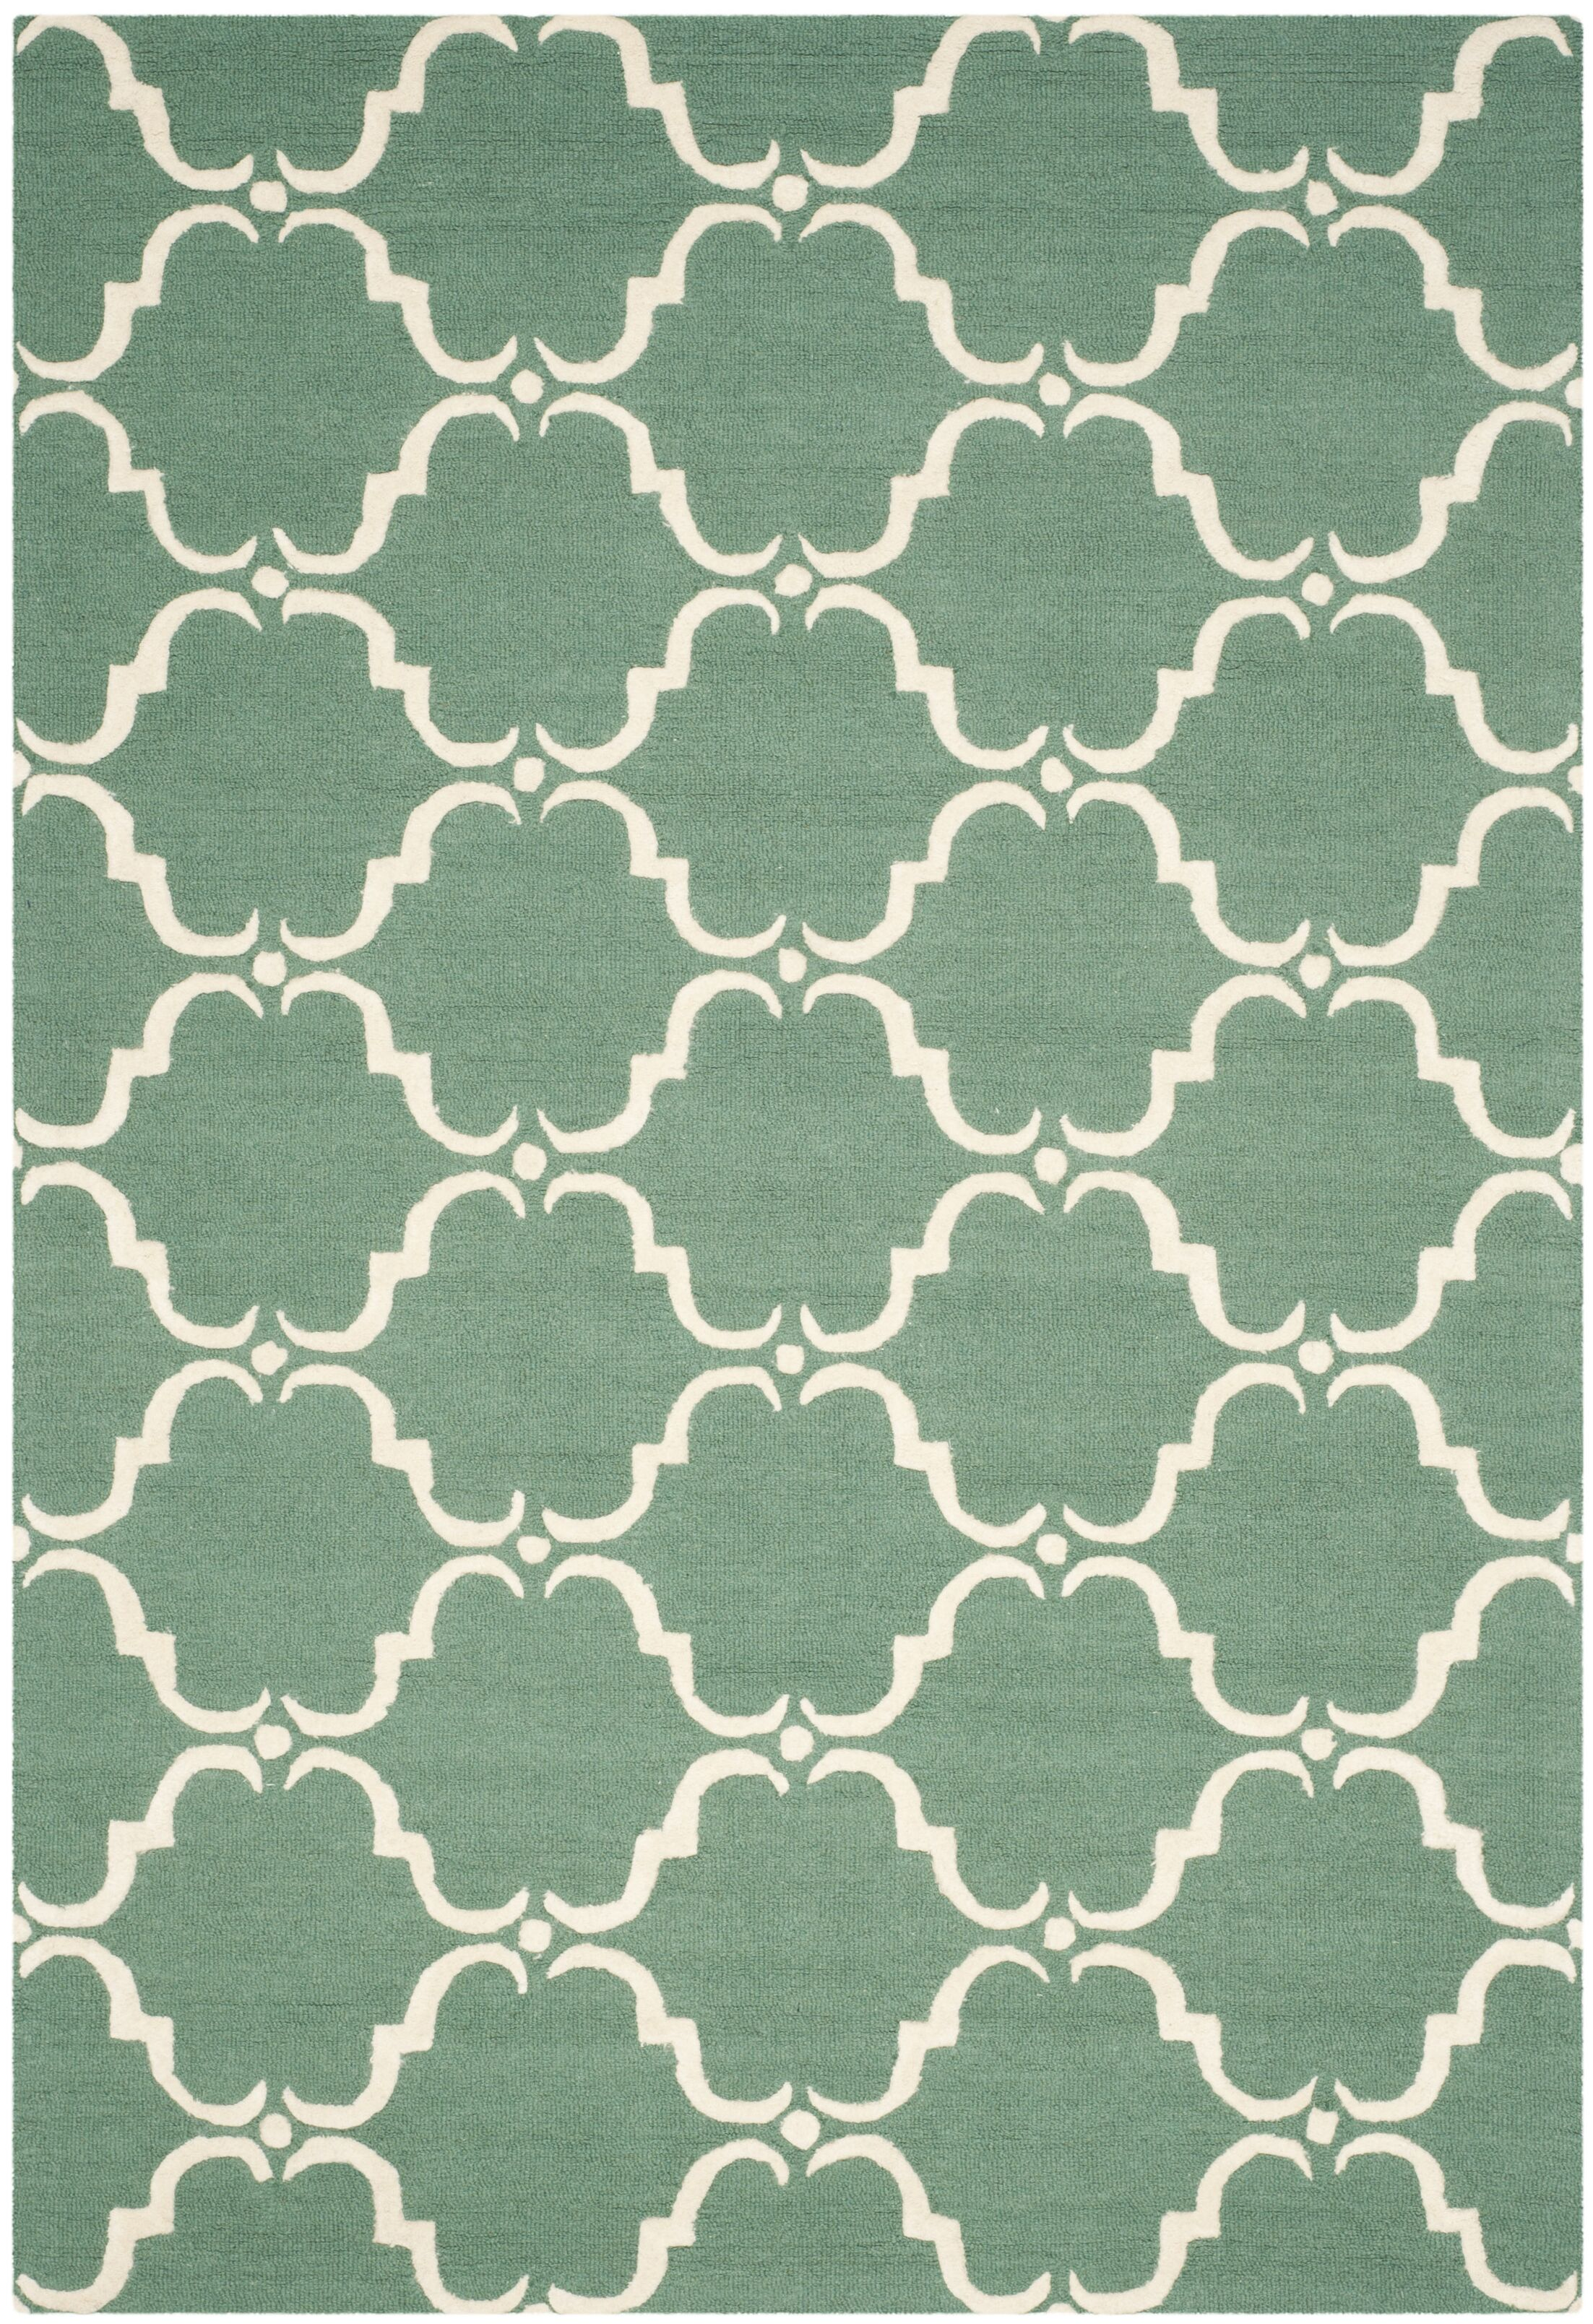 Cambridge Tufted Wool Teal/Ivory Area Rug Rug Size: Rectangle 9' x 12'